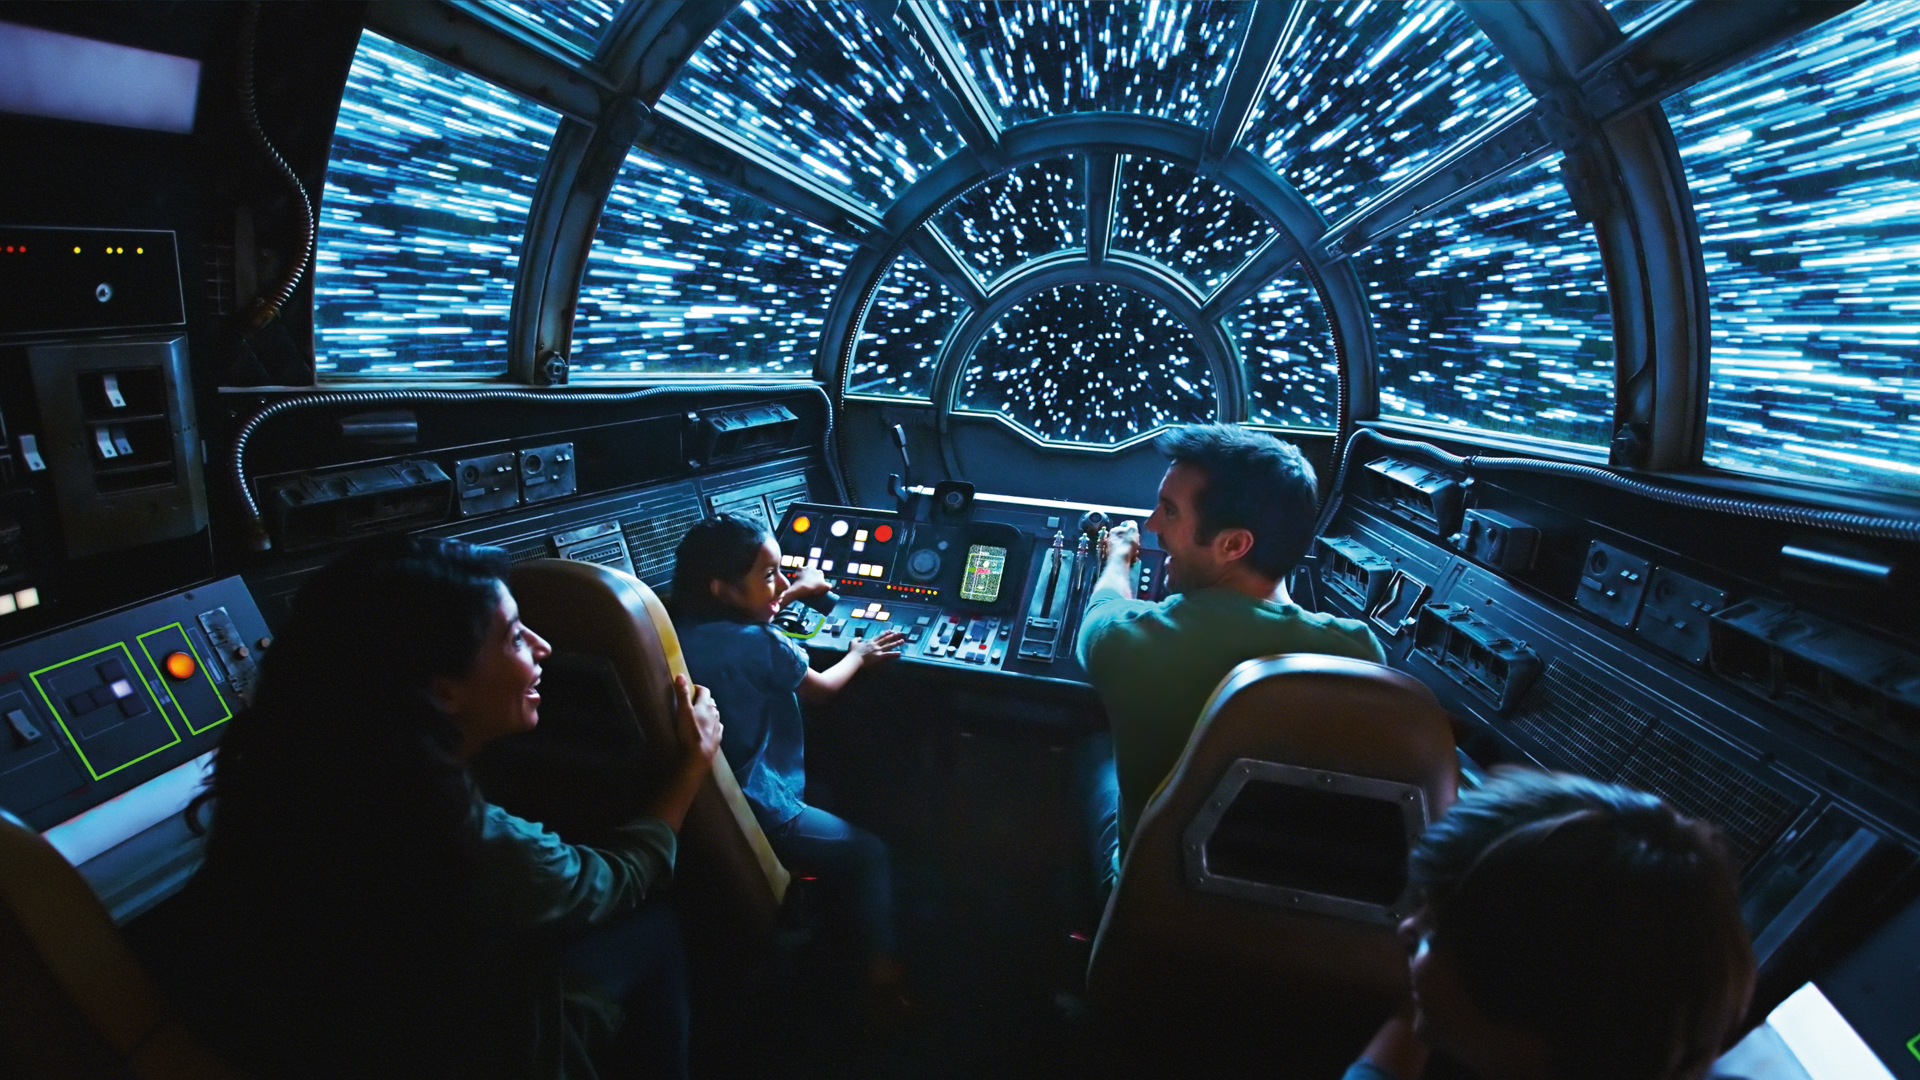 Slide 6 of 21: Location: Anaheim, California Admission price: $104+ Ride opening: May 31, 2019 Since it was announced on Aug. 15, 2015, fans have eagerly awaited the opening of Star Wars: Galaxy's Edge, a land inspired by George Lucas' iconic sci-fi film series. The area promises a hangar bay filled with galactic treats, a realistic cantina, several exciting shops — including one that sellsporgs, everyone's favorite bird creature — and, of course, the famous Millennium Falcon. When you're ready for an adventure, board Han Solo's signature ship for your very own hyperspace smuggling mission. Not sure you can hack it as a crewmember aboard the fastest ship in the galaxy? Don't worry, skilled pirate Hondo Ohnaka will help you out along the way. Fortunately, he isn't picky when it comes to his crew's previous smuggling experience — or lack thereof. Given the fact that you get to hop into a world beloved by all since the '70s, the price is definitely worth it. Just bear in mind that reservations are required for visits between May 31, 2019, and June 23, 2019, and access may be limited based on guest demand. Fun Fact: Here's How Much It Cost to Go to Disney World the Year You Were Born